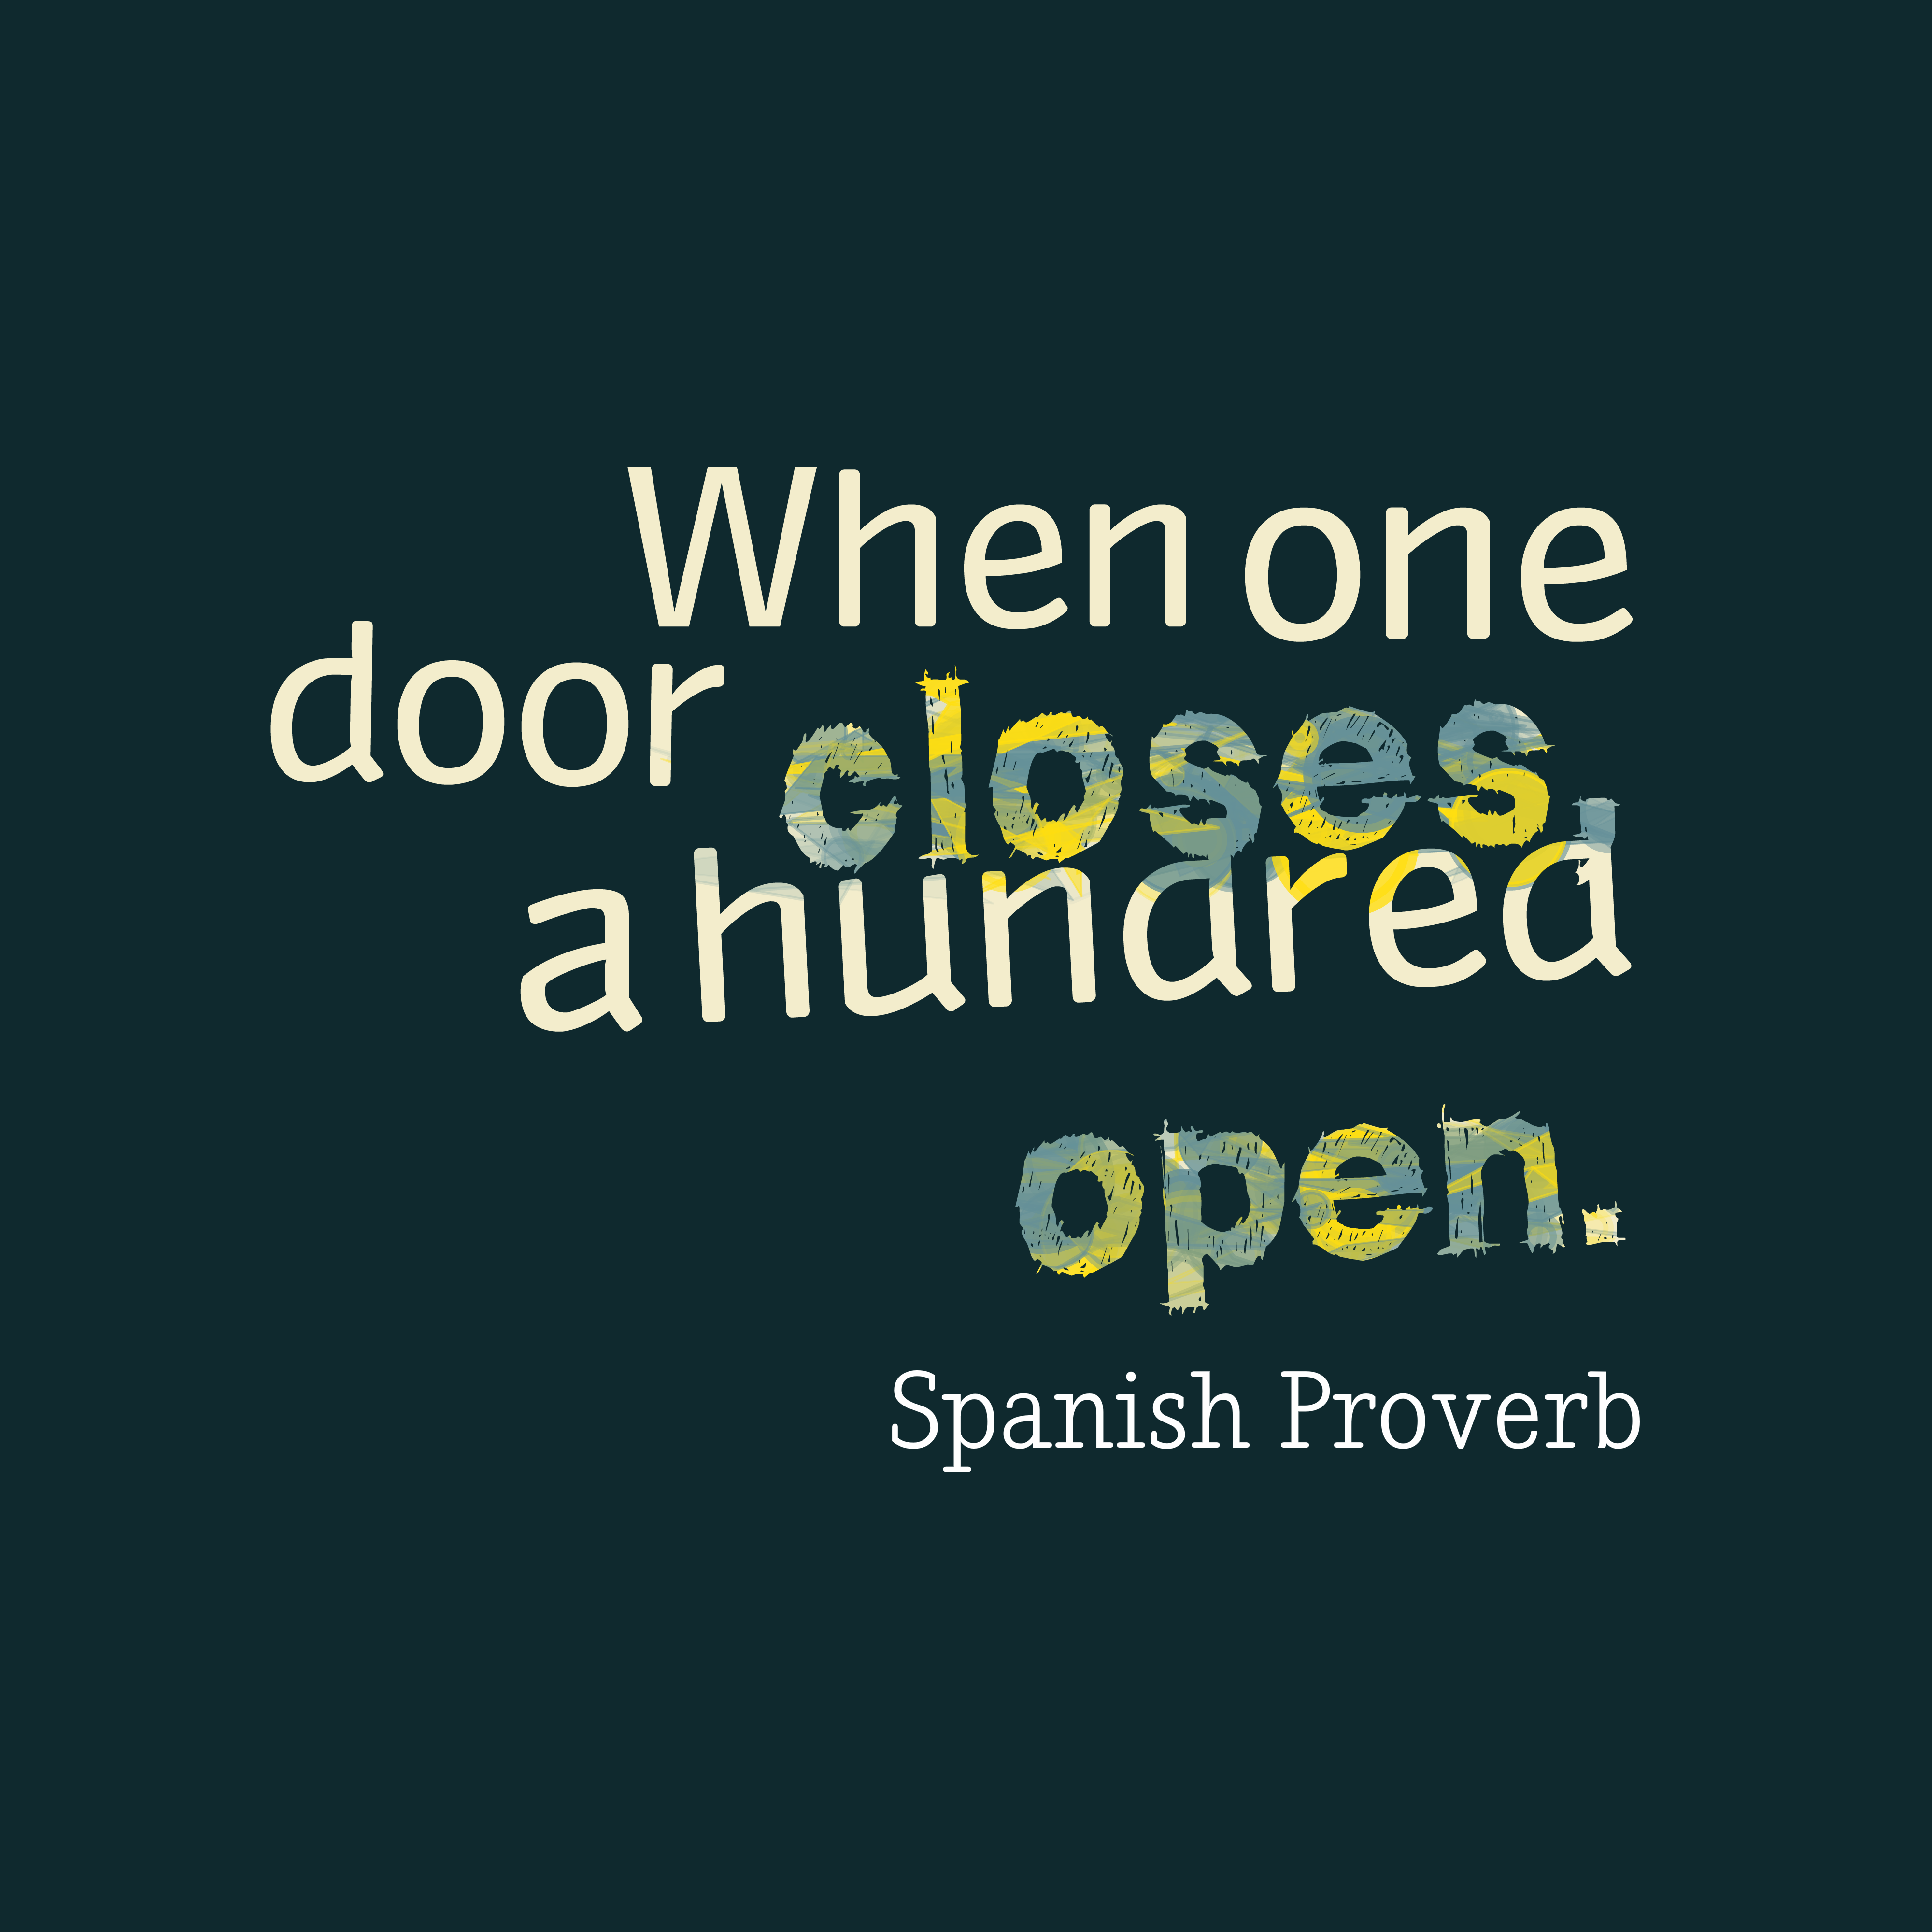 Spanish Proverb About Way